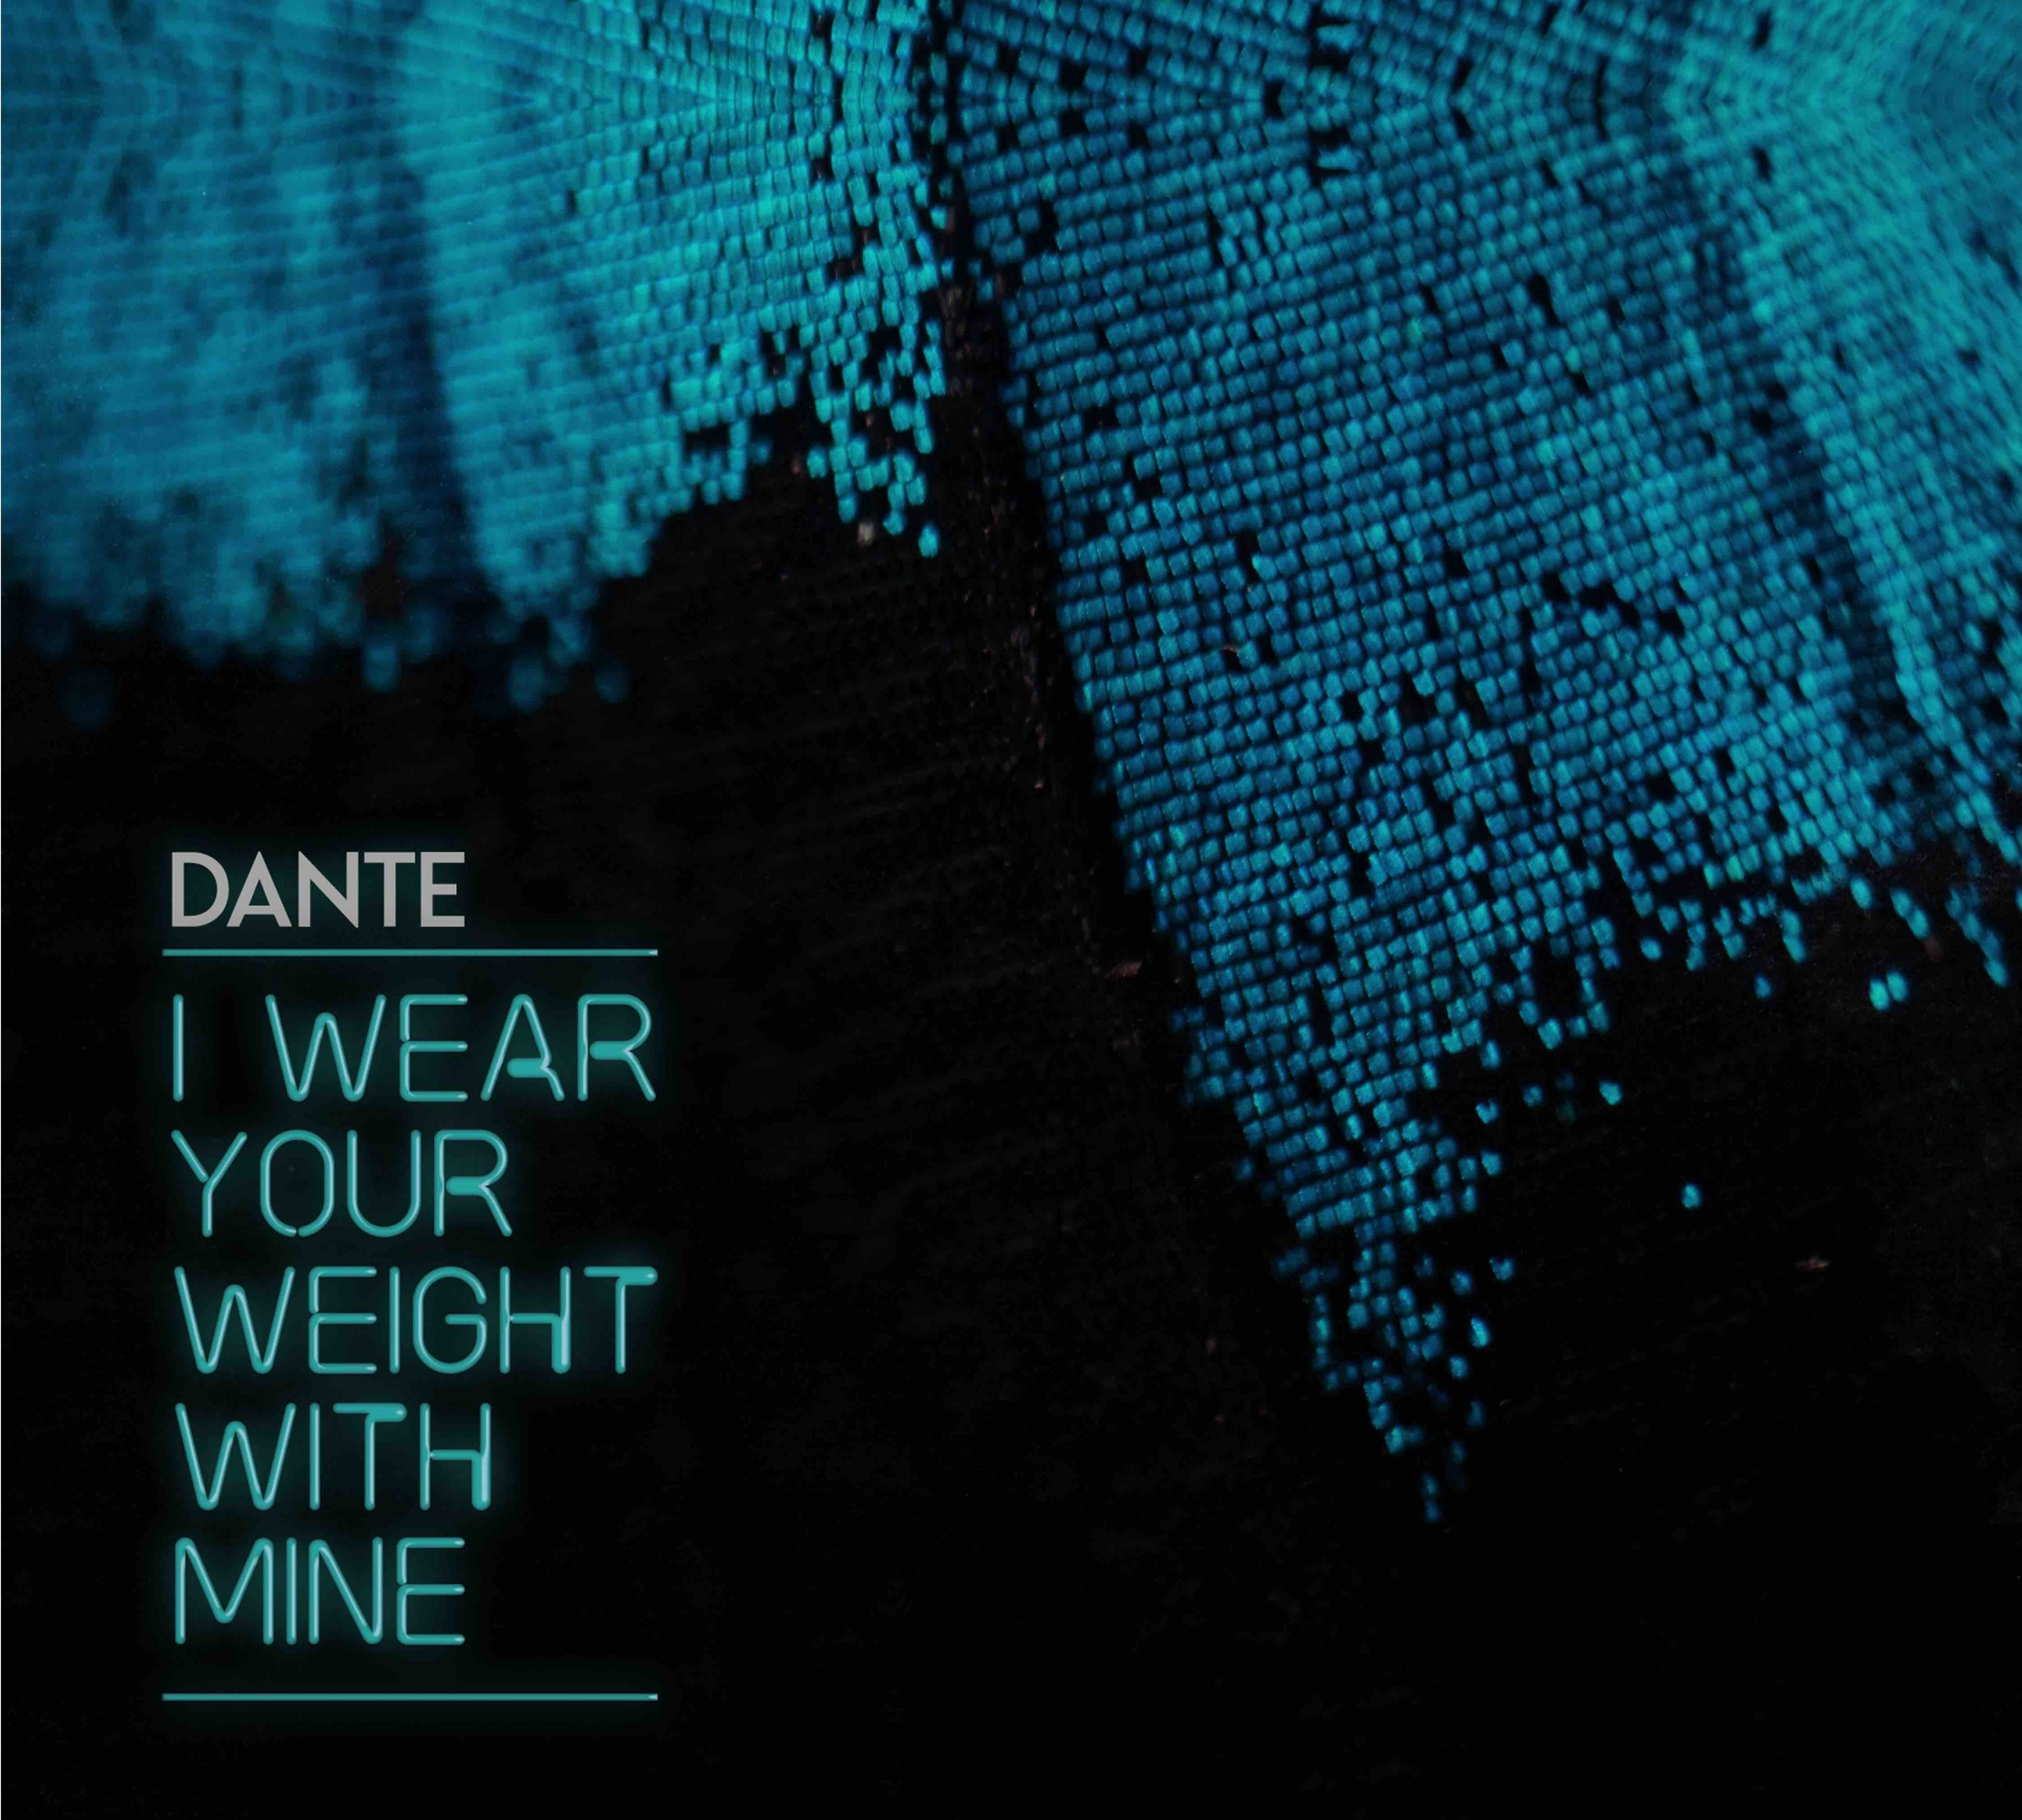 Dante - I wear Your Weight With Mine - Artwork.jpg